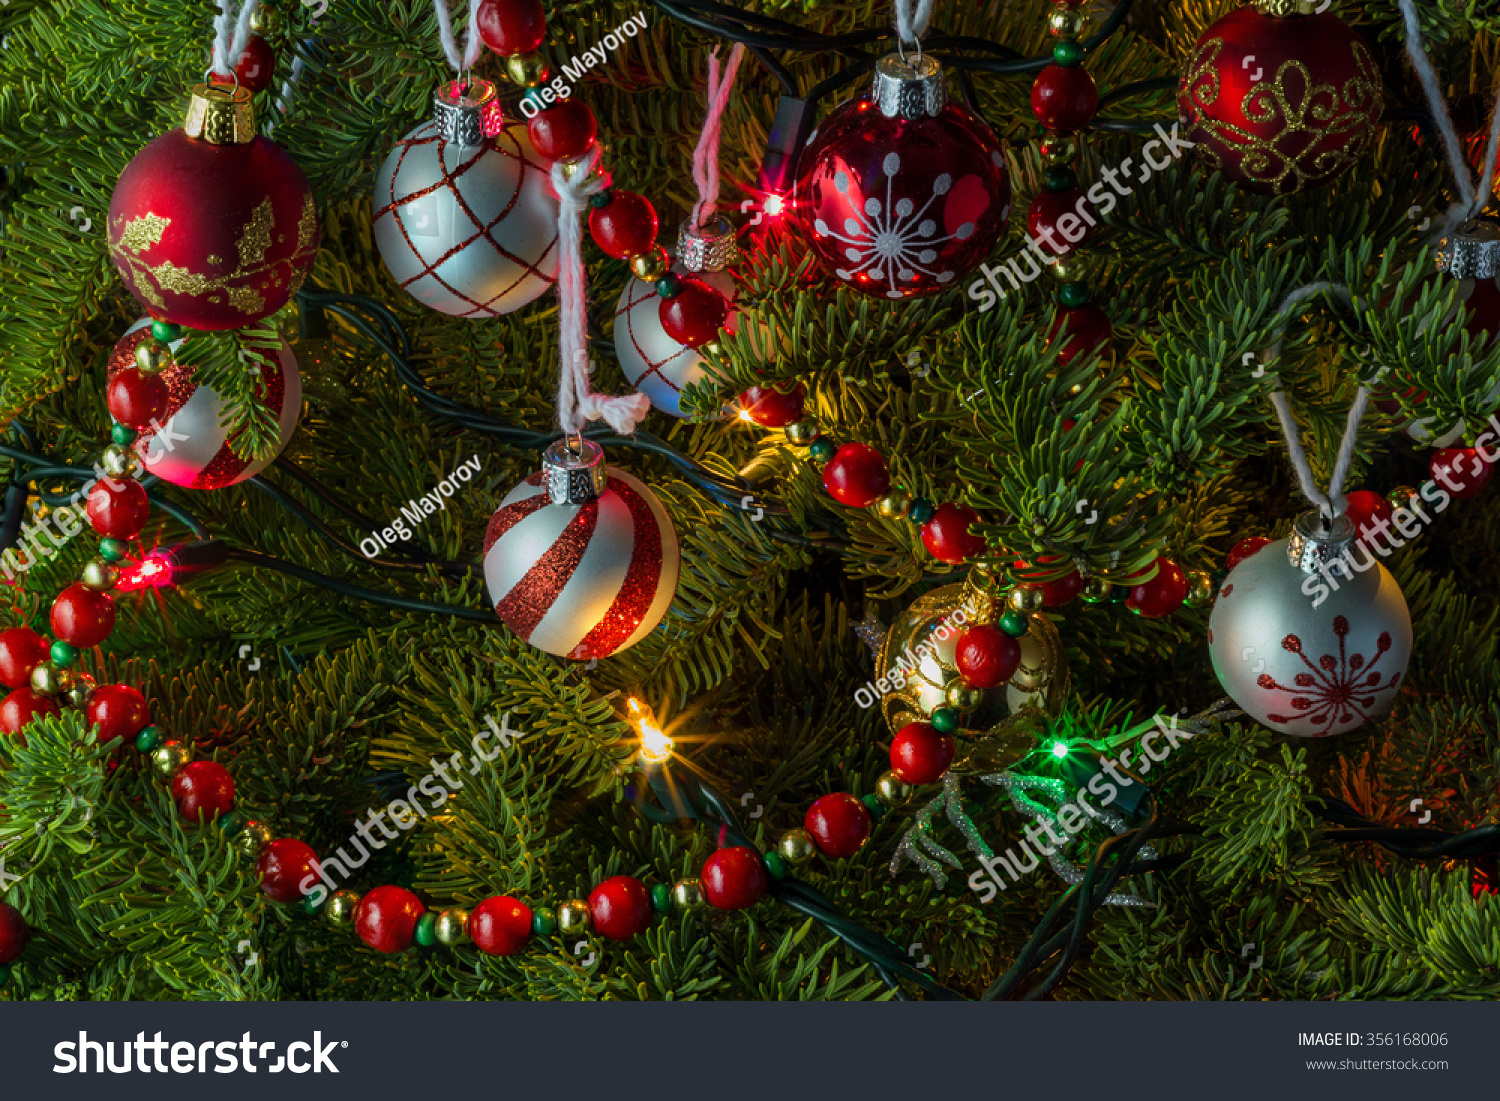 Christmas tree ball other decorations stock photo